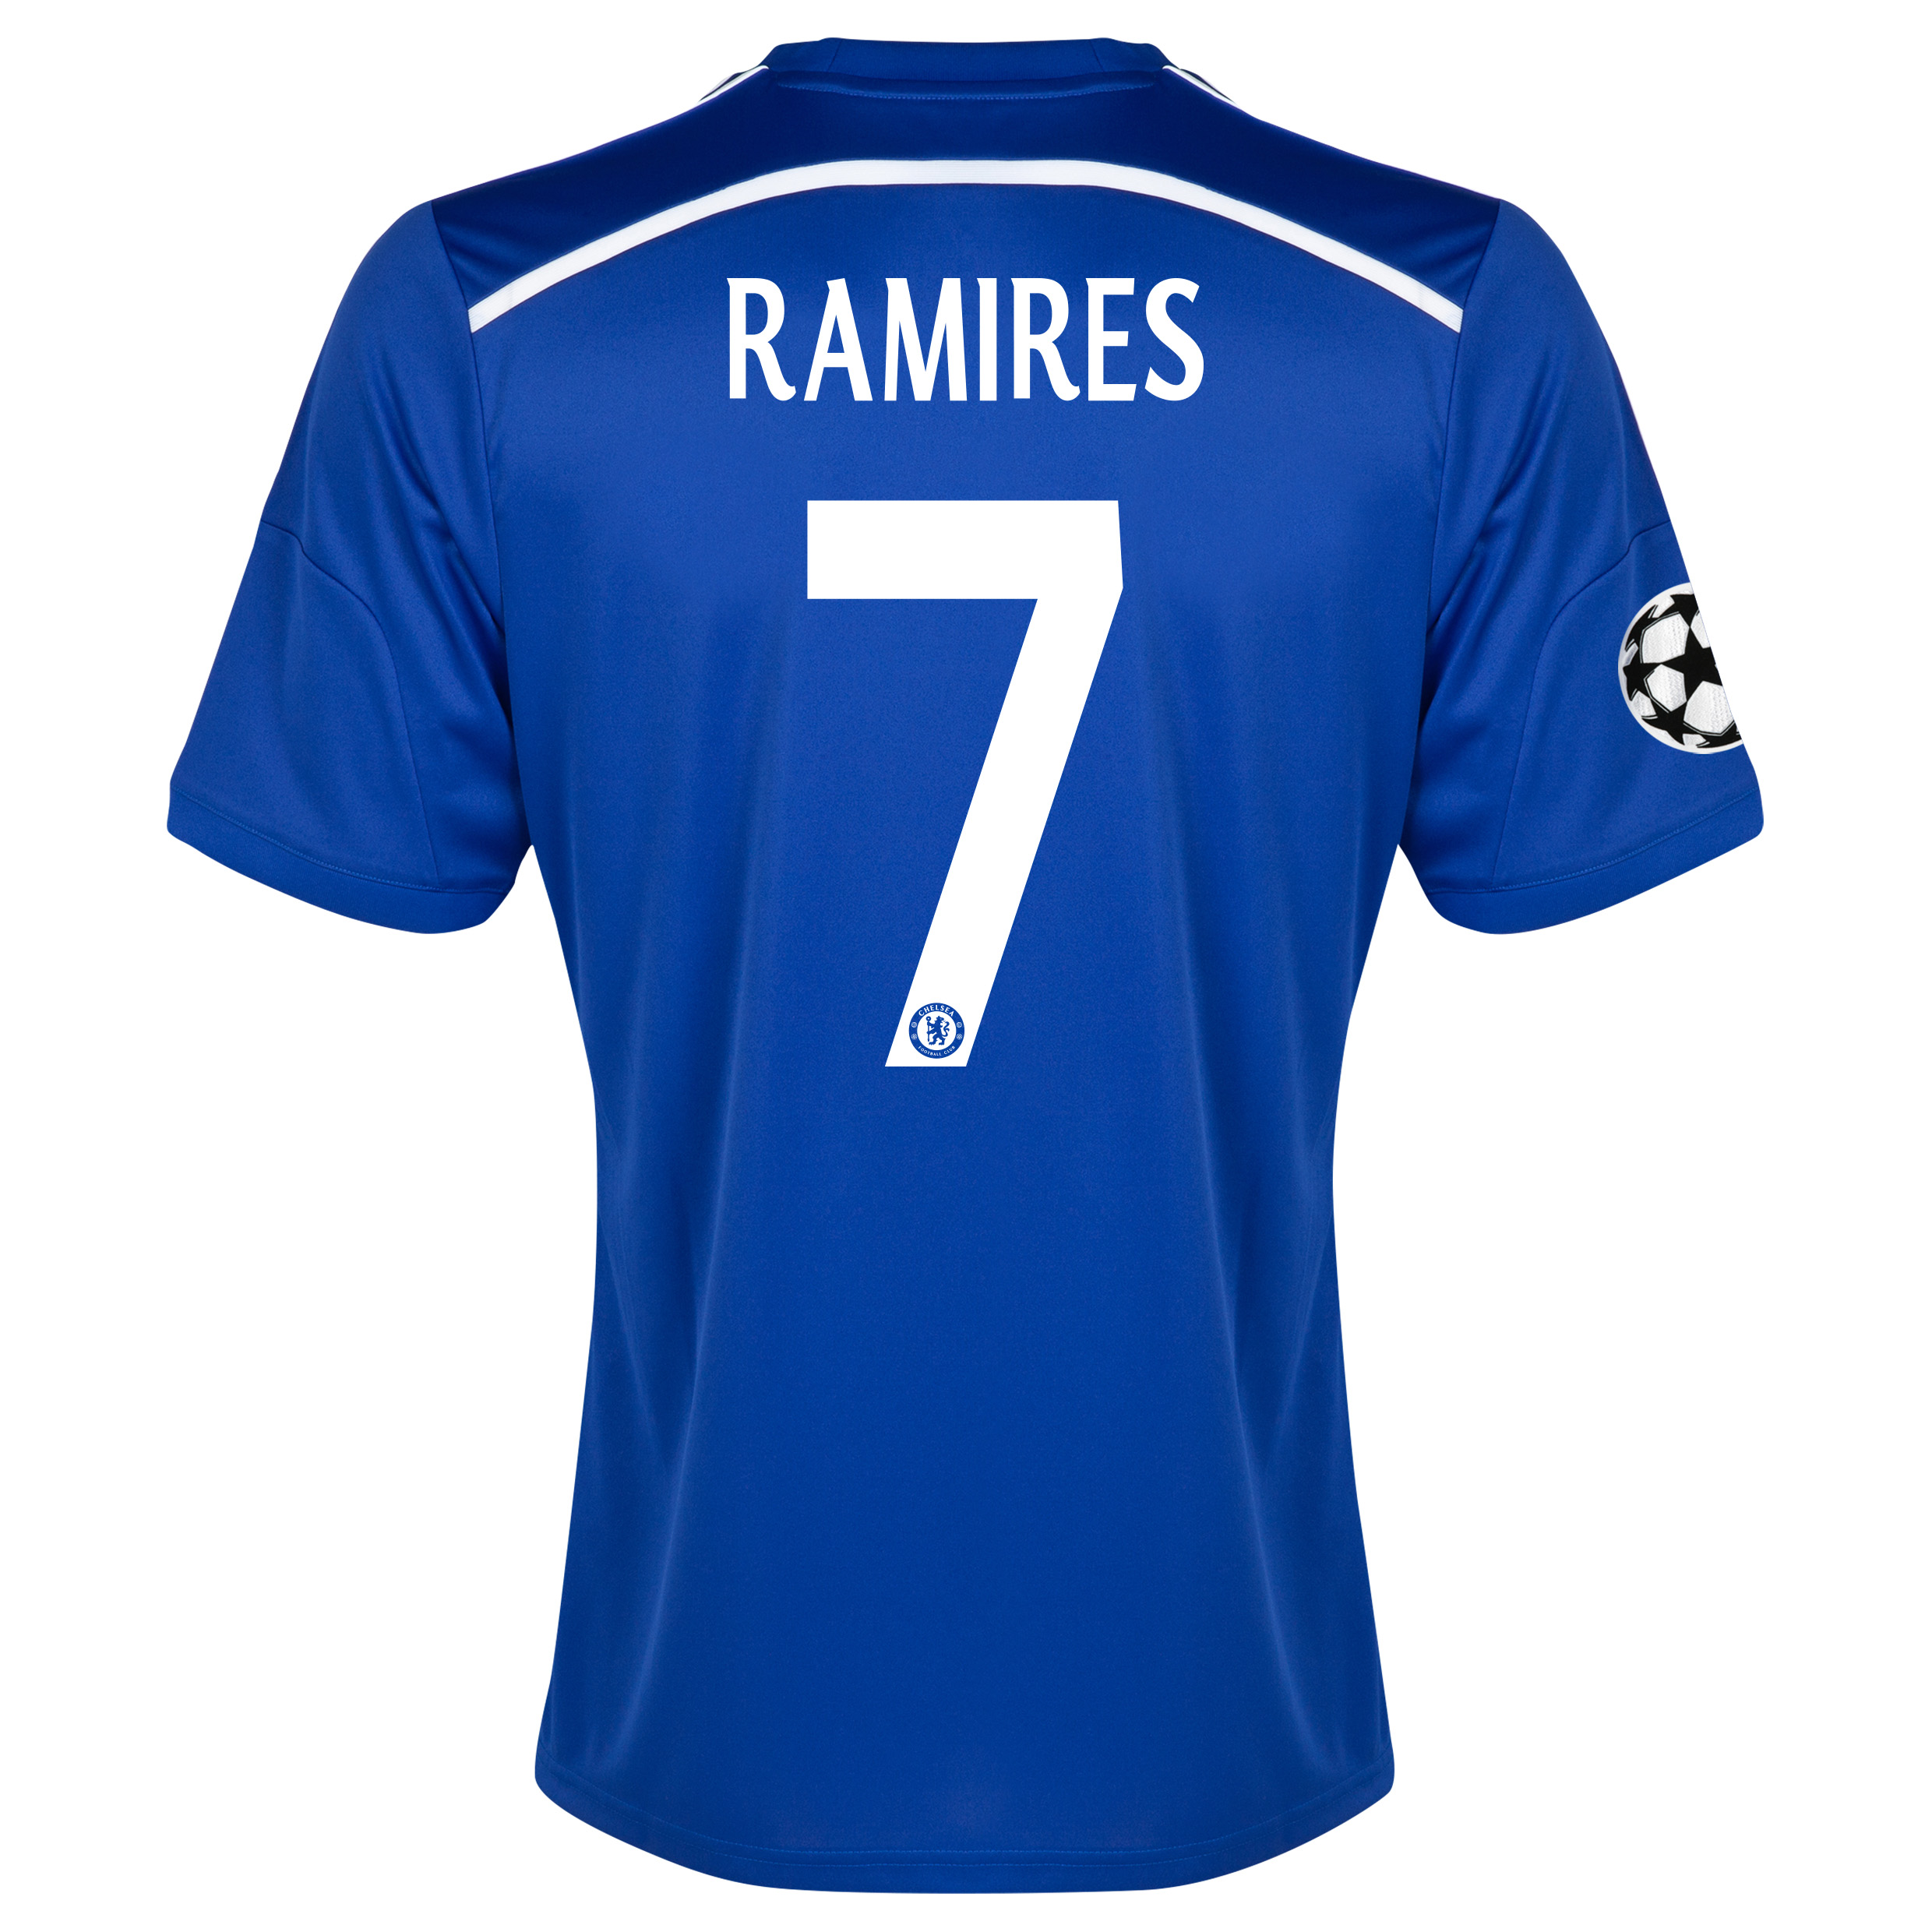 Chelsea UEFA Champions League Home Shirt 2014/15 Blue with Ramires 7 printing